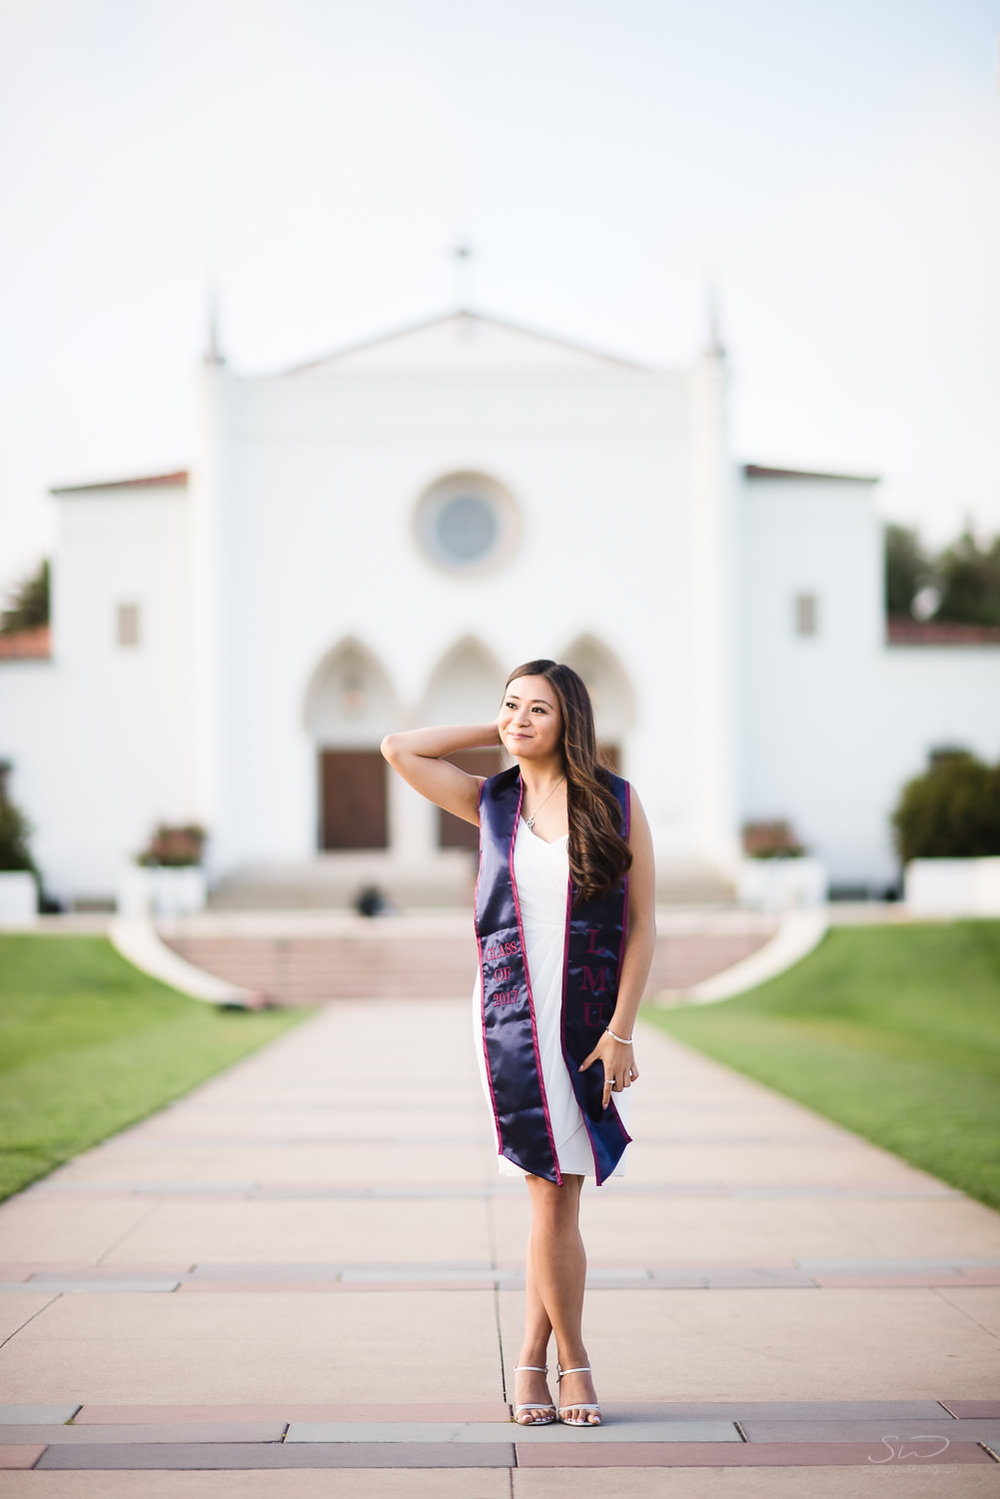 Sacred Heart Chapel at Loyola Marymount University LMU. Best graduation portrait photography, Los Angeles.